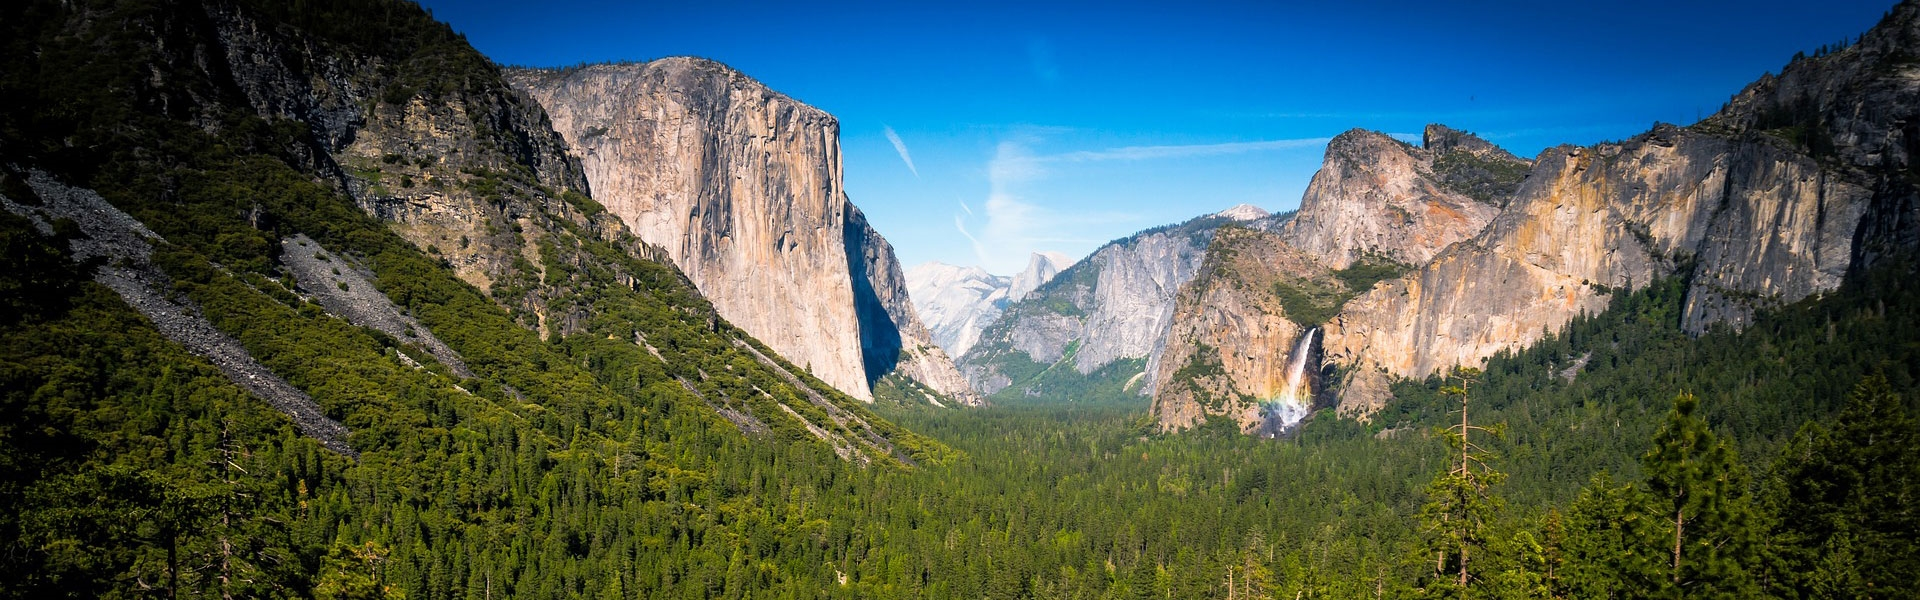 malibu and yosemite the burning factor essay Start studying apes review learn vocabulary, terms, and more with flashcards, games, and other study tools  was an essay written by garret hardin about the abuse.